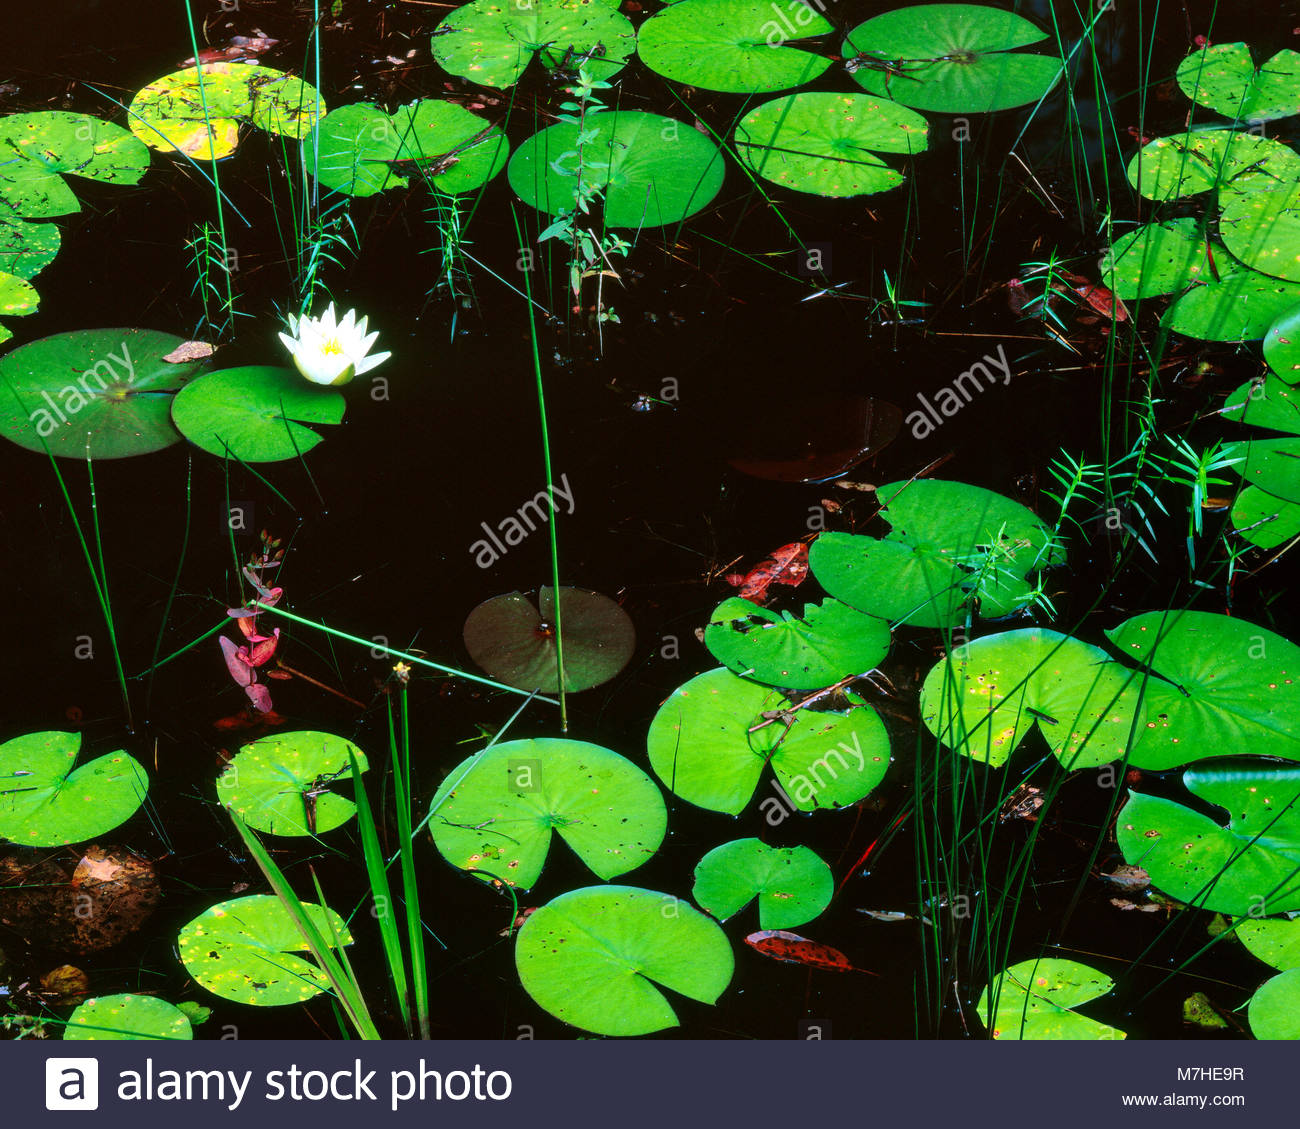 Lily Pads, Hellhole Swamp, Hellhole Bay Wilderness, Francis Marion National Forest, South Carolina - Stock Image